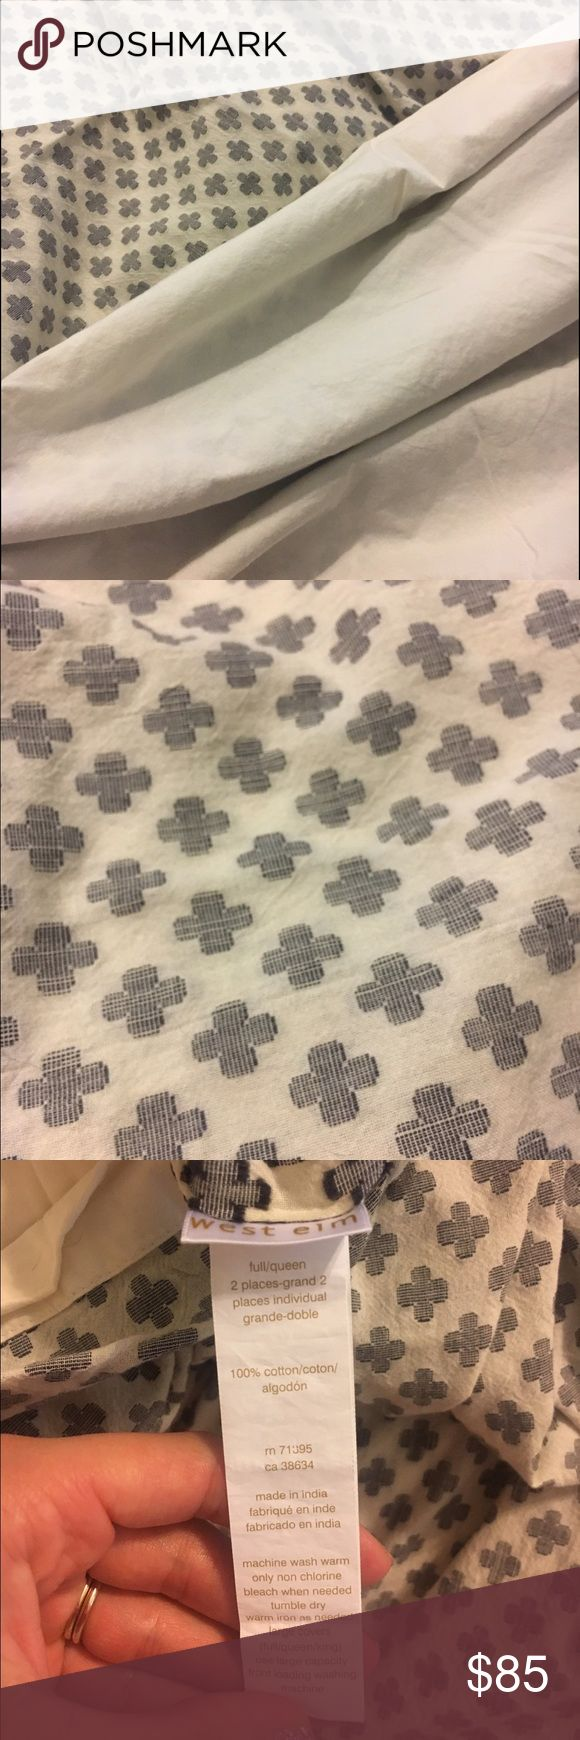 West Elm duvet cover Full/Queen duvet cover. Black and cream design with all buttons intact. Great condition. West Elm Other